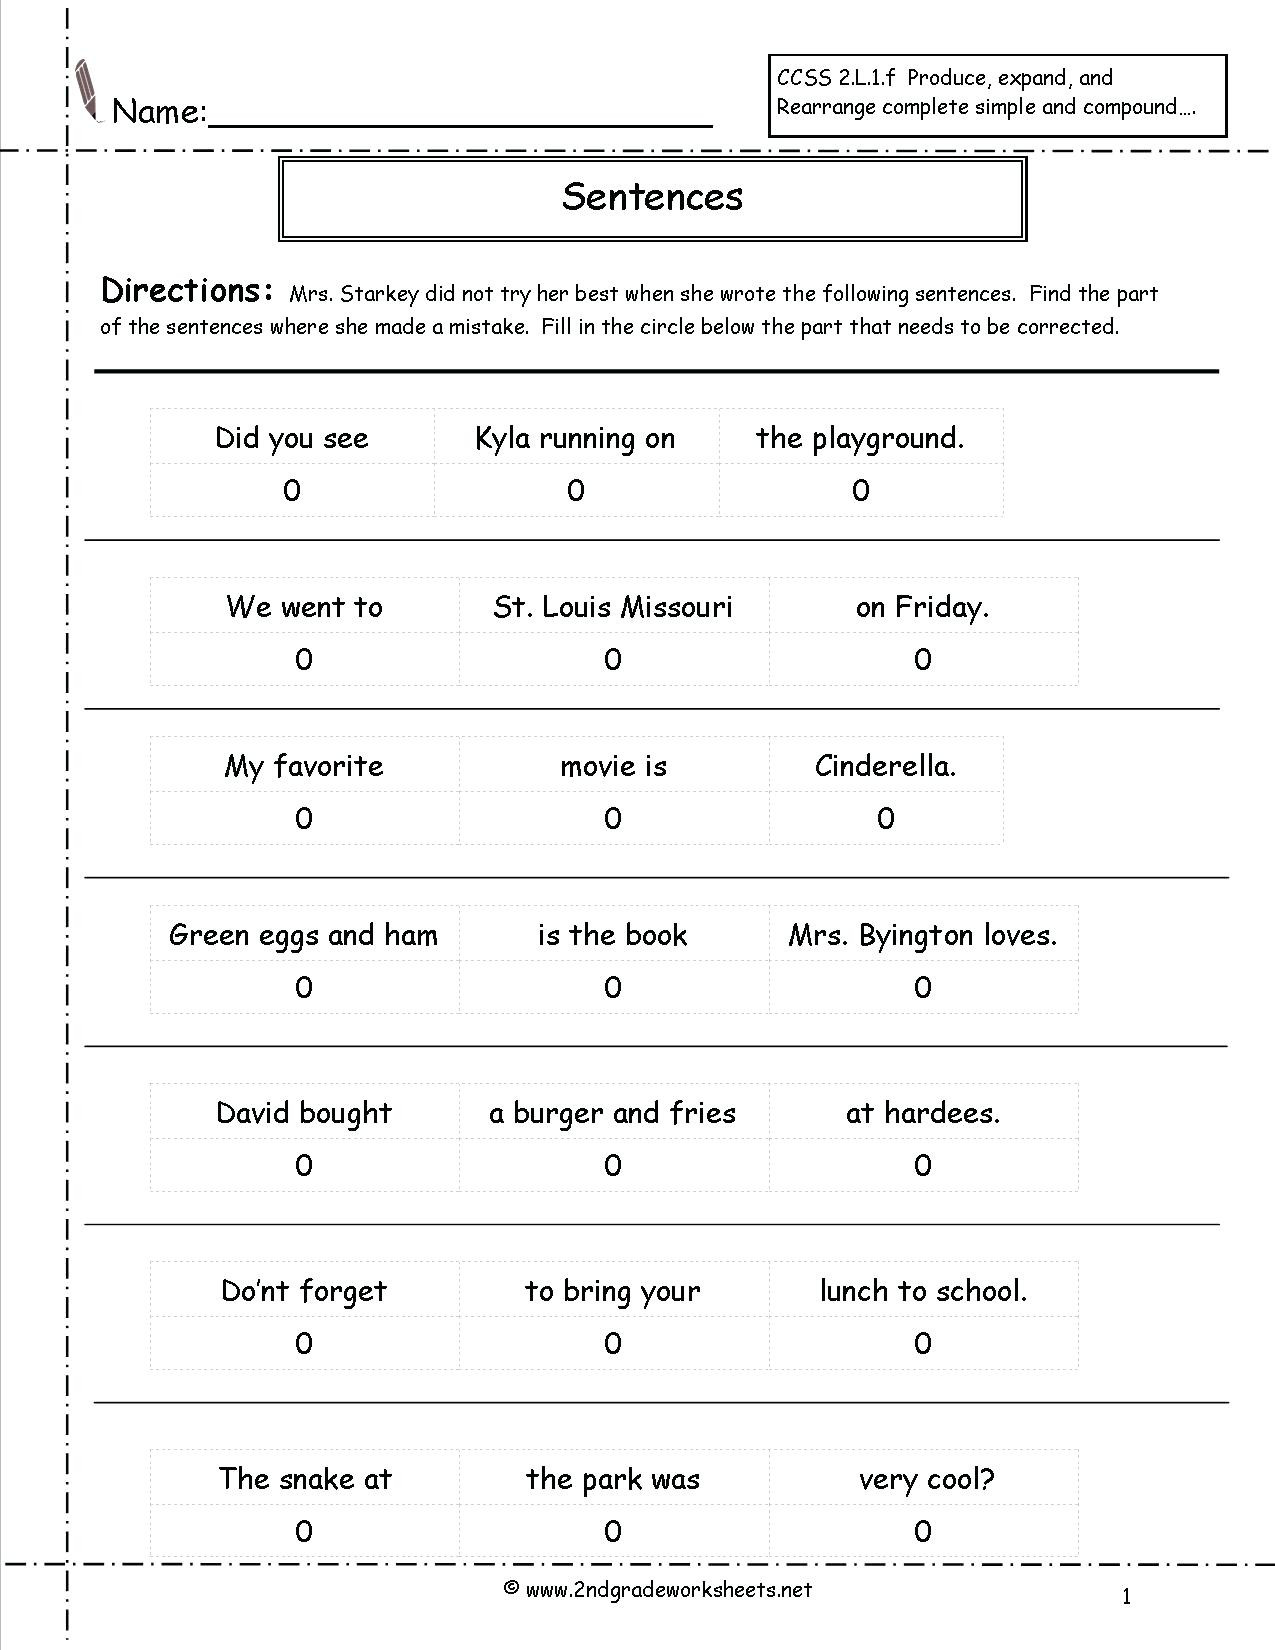 Complete Sentence Worksheets 4th Grade Types Sentences Worksheets to Download Types Of